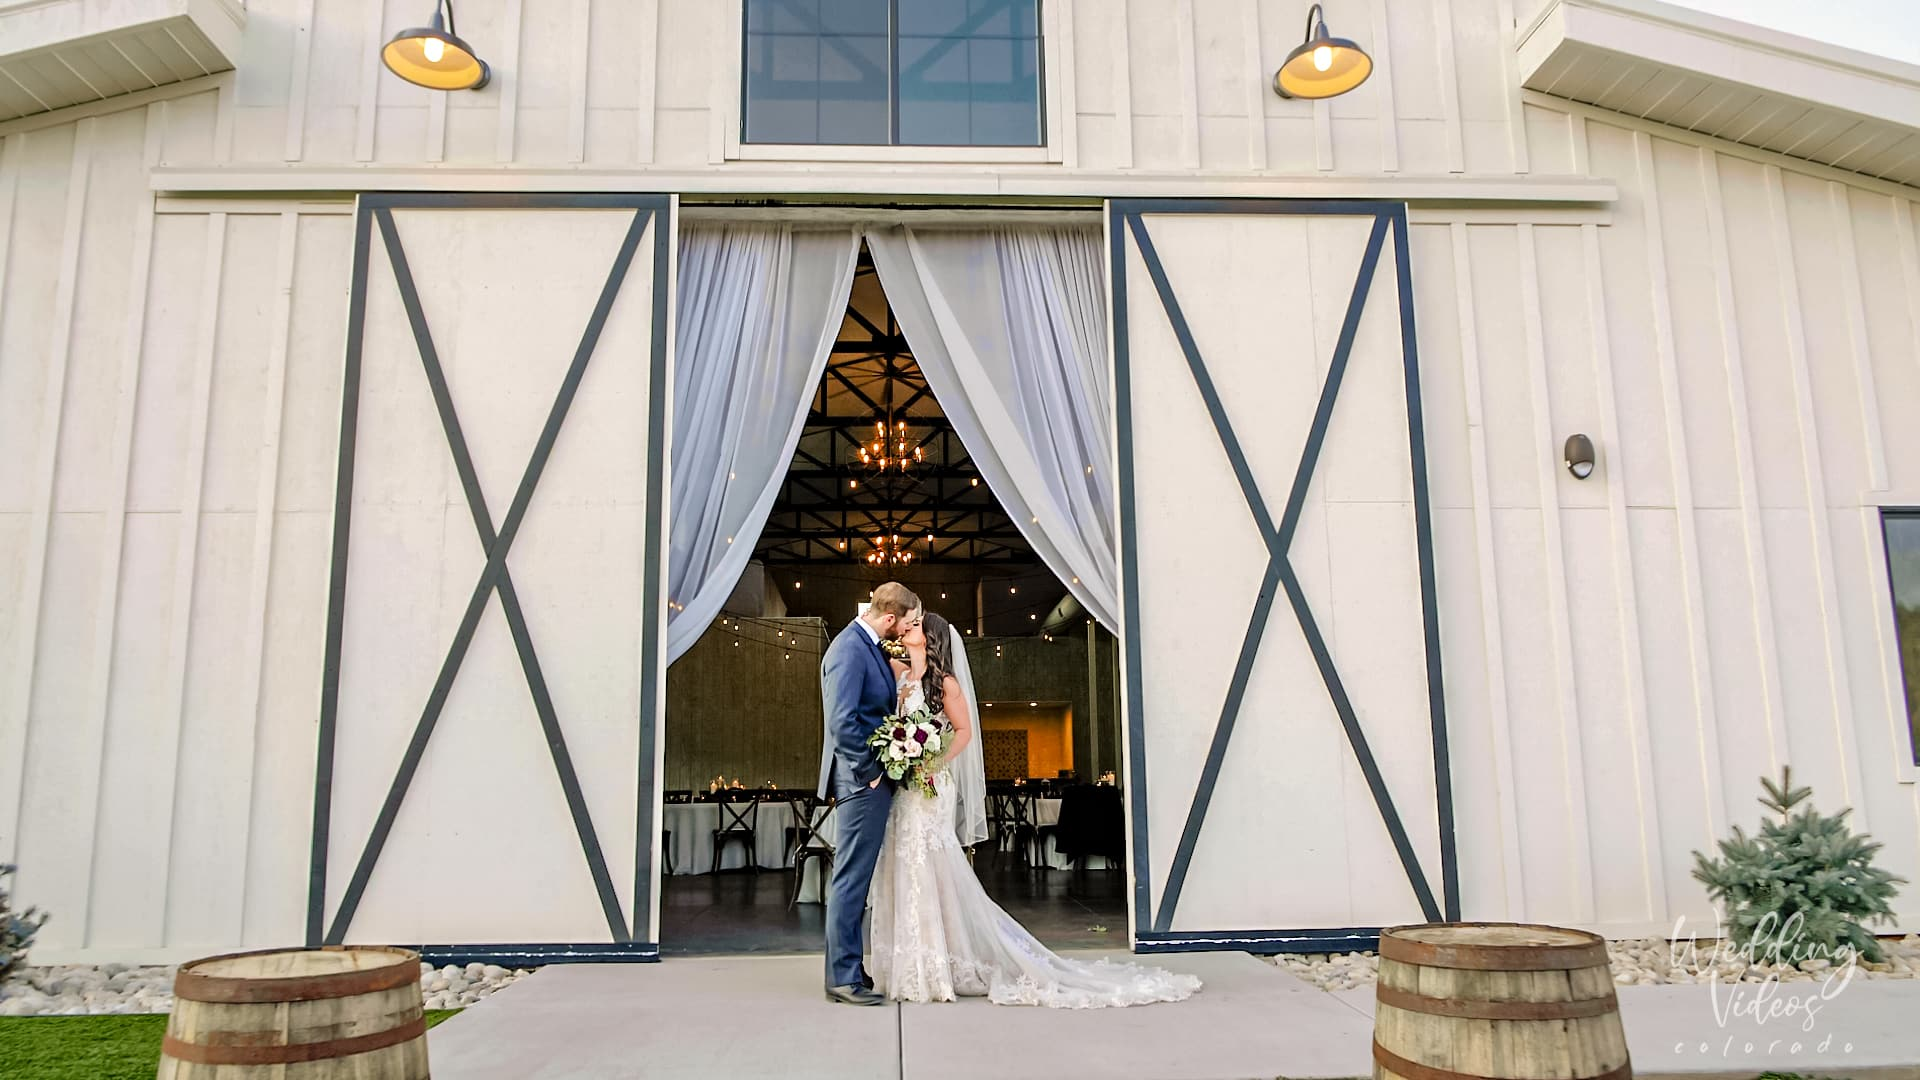 Taylor Courtney The Woodlands Morrison CO Wedding Video